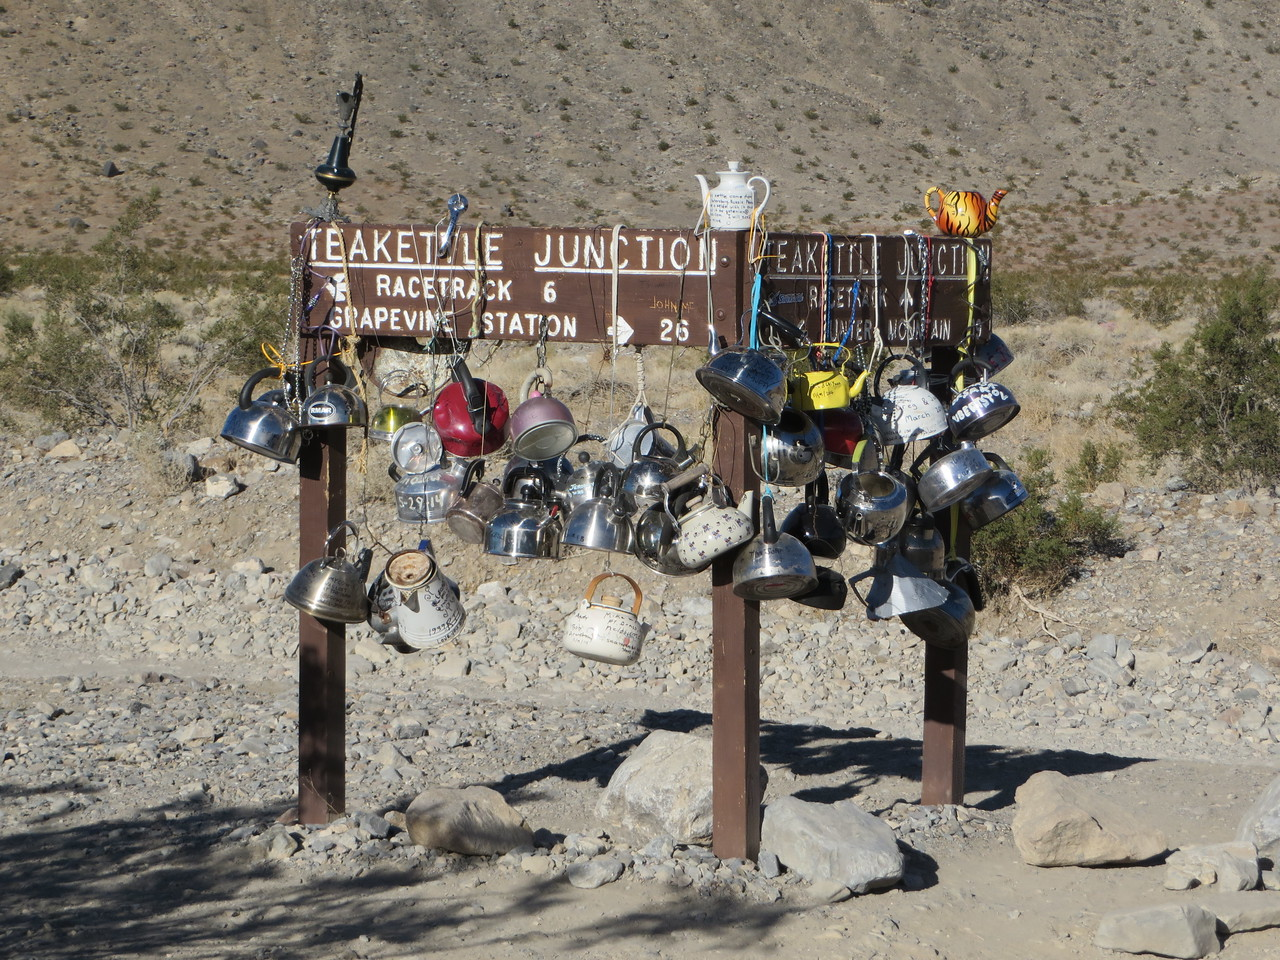 As the sign says: Teakettle Junction. Lots of travelers bring decorated and inscribed teakettles and hang them here, so many in fact that every year they are removed. The National Park had an employee who was collecting them in a Park storage area, but now that he's retired the fate of the teakettles is ambiguous. A Facebook group ( https://www.facebook.com/TeakettleJunction ) is attempting to store them, with mentions of a future museum somewhere. Not sure I'd be that interested in seeing thousands of old decorated teakettles…